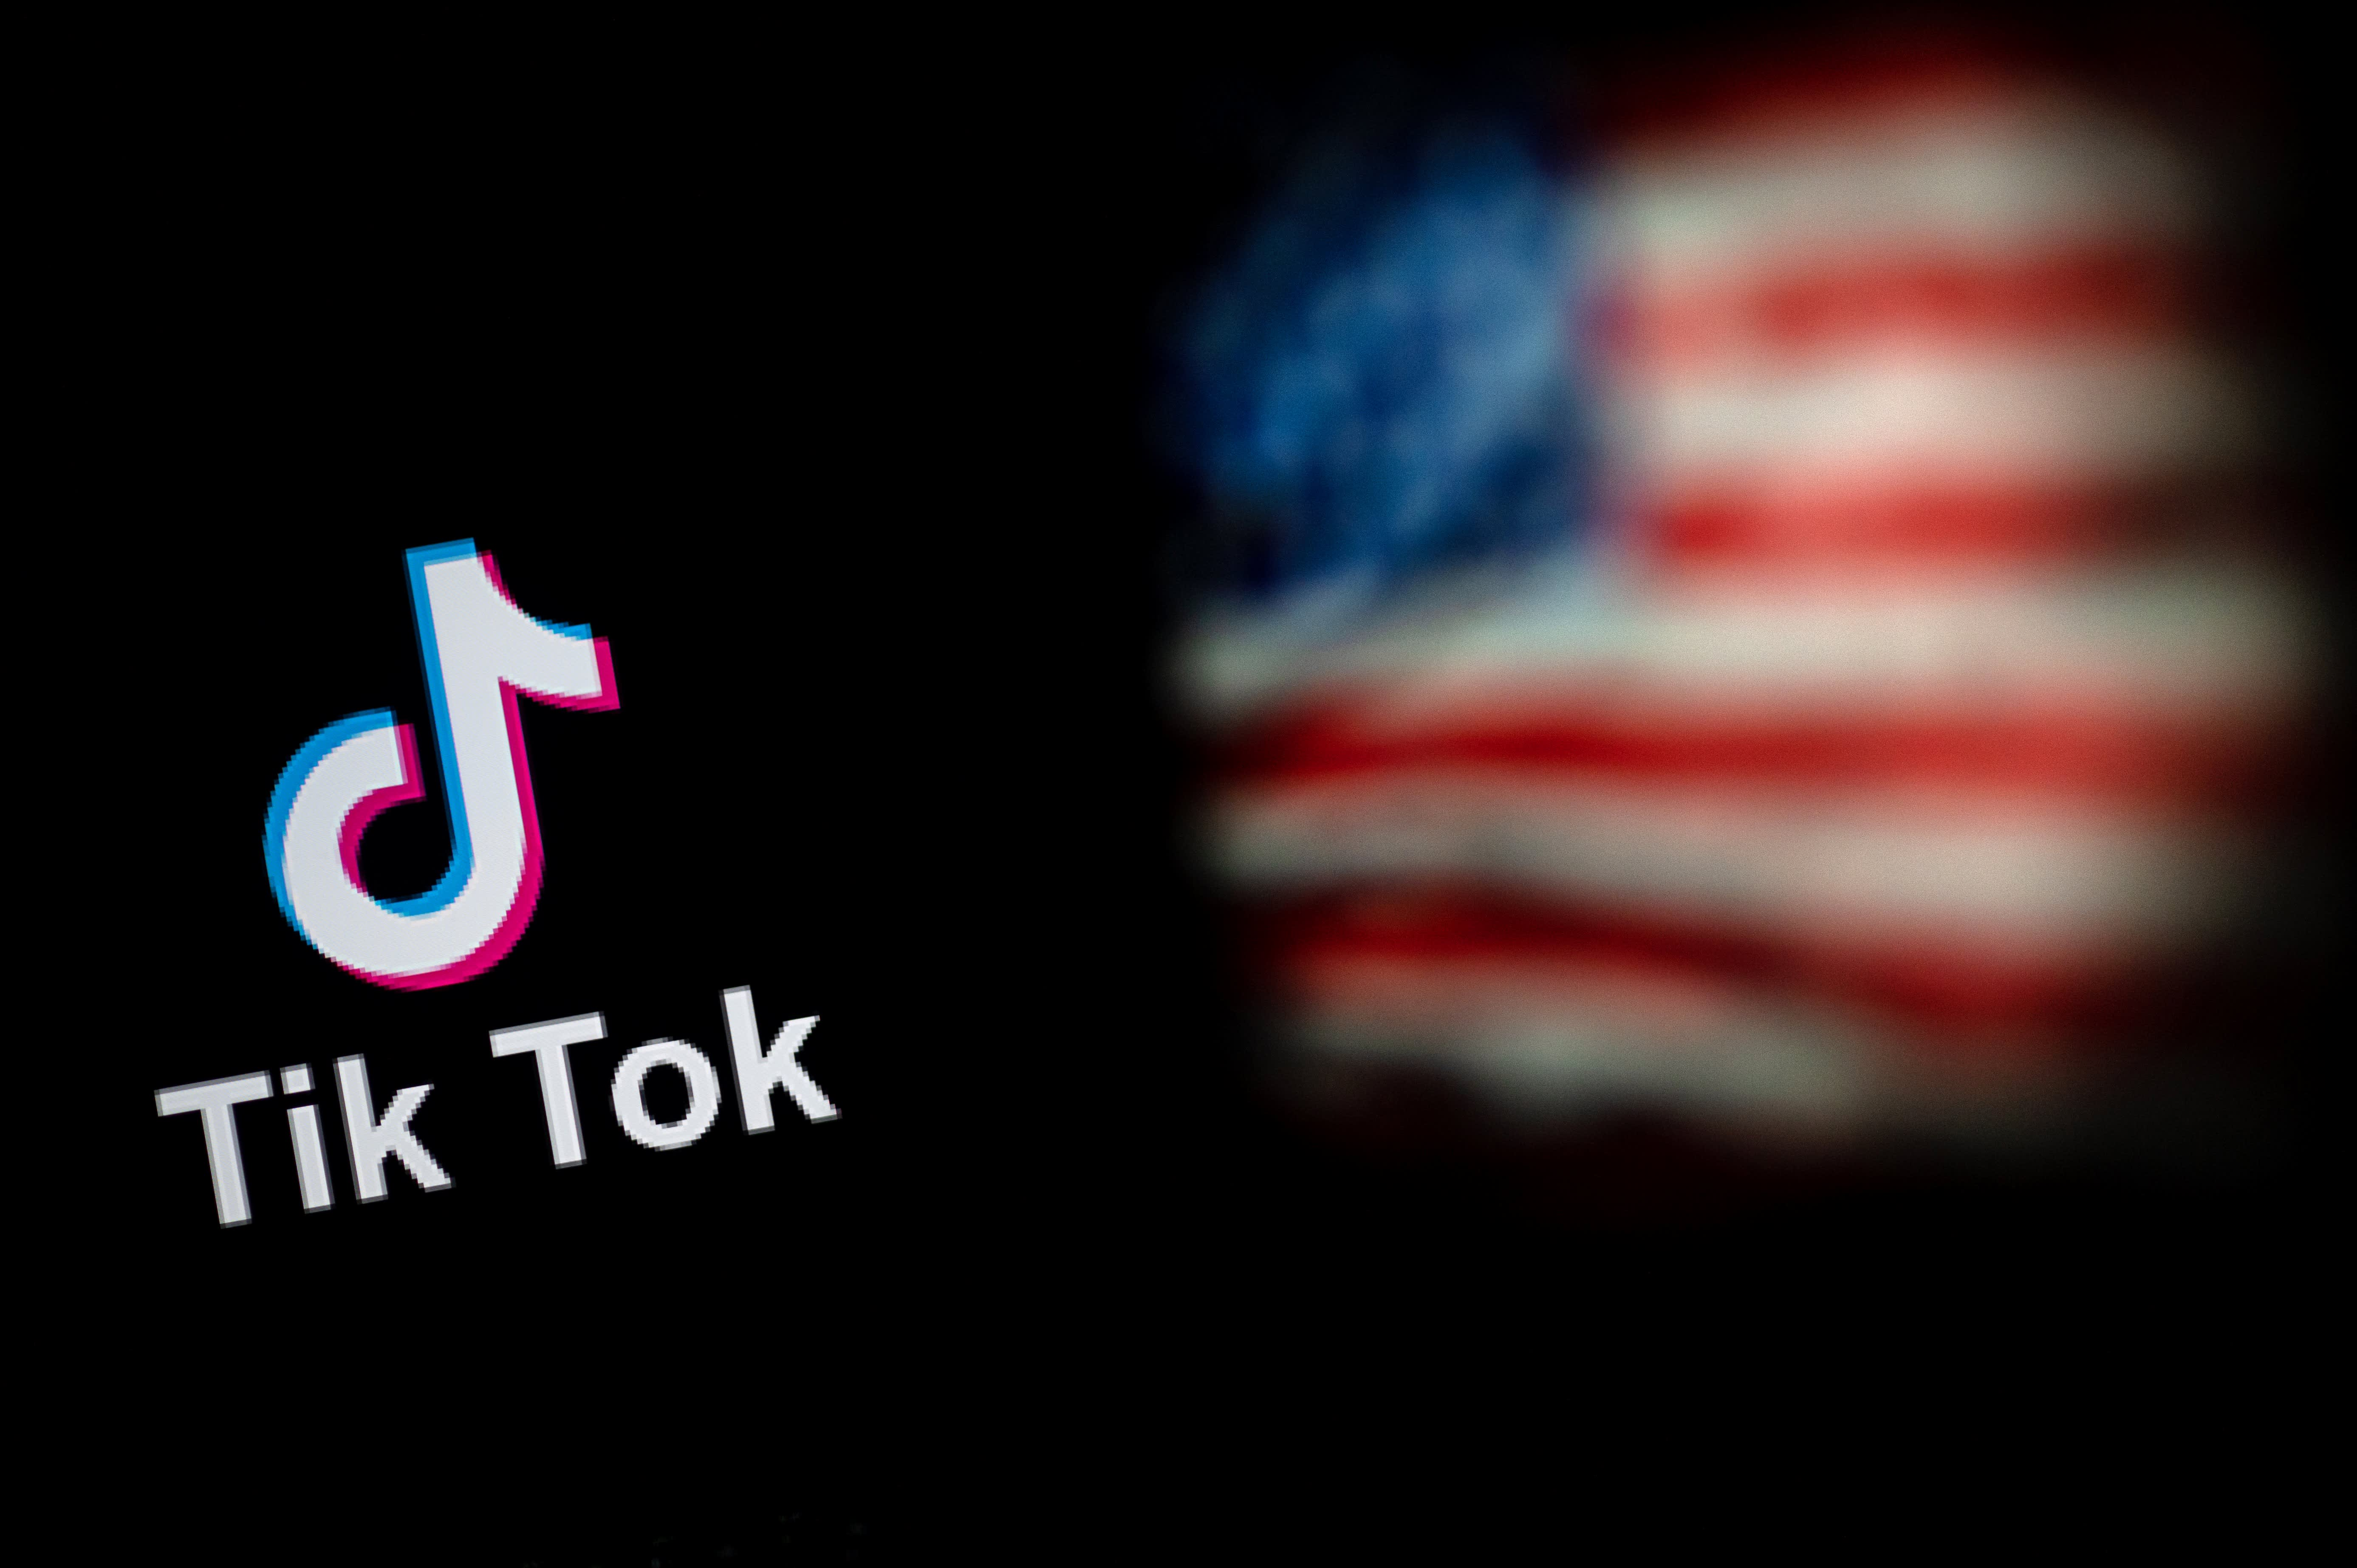 ByteDance says it will own 80% of TikTok U.S. firm, contradicts Trump's claims deal has 'nothing to do with China'